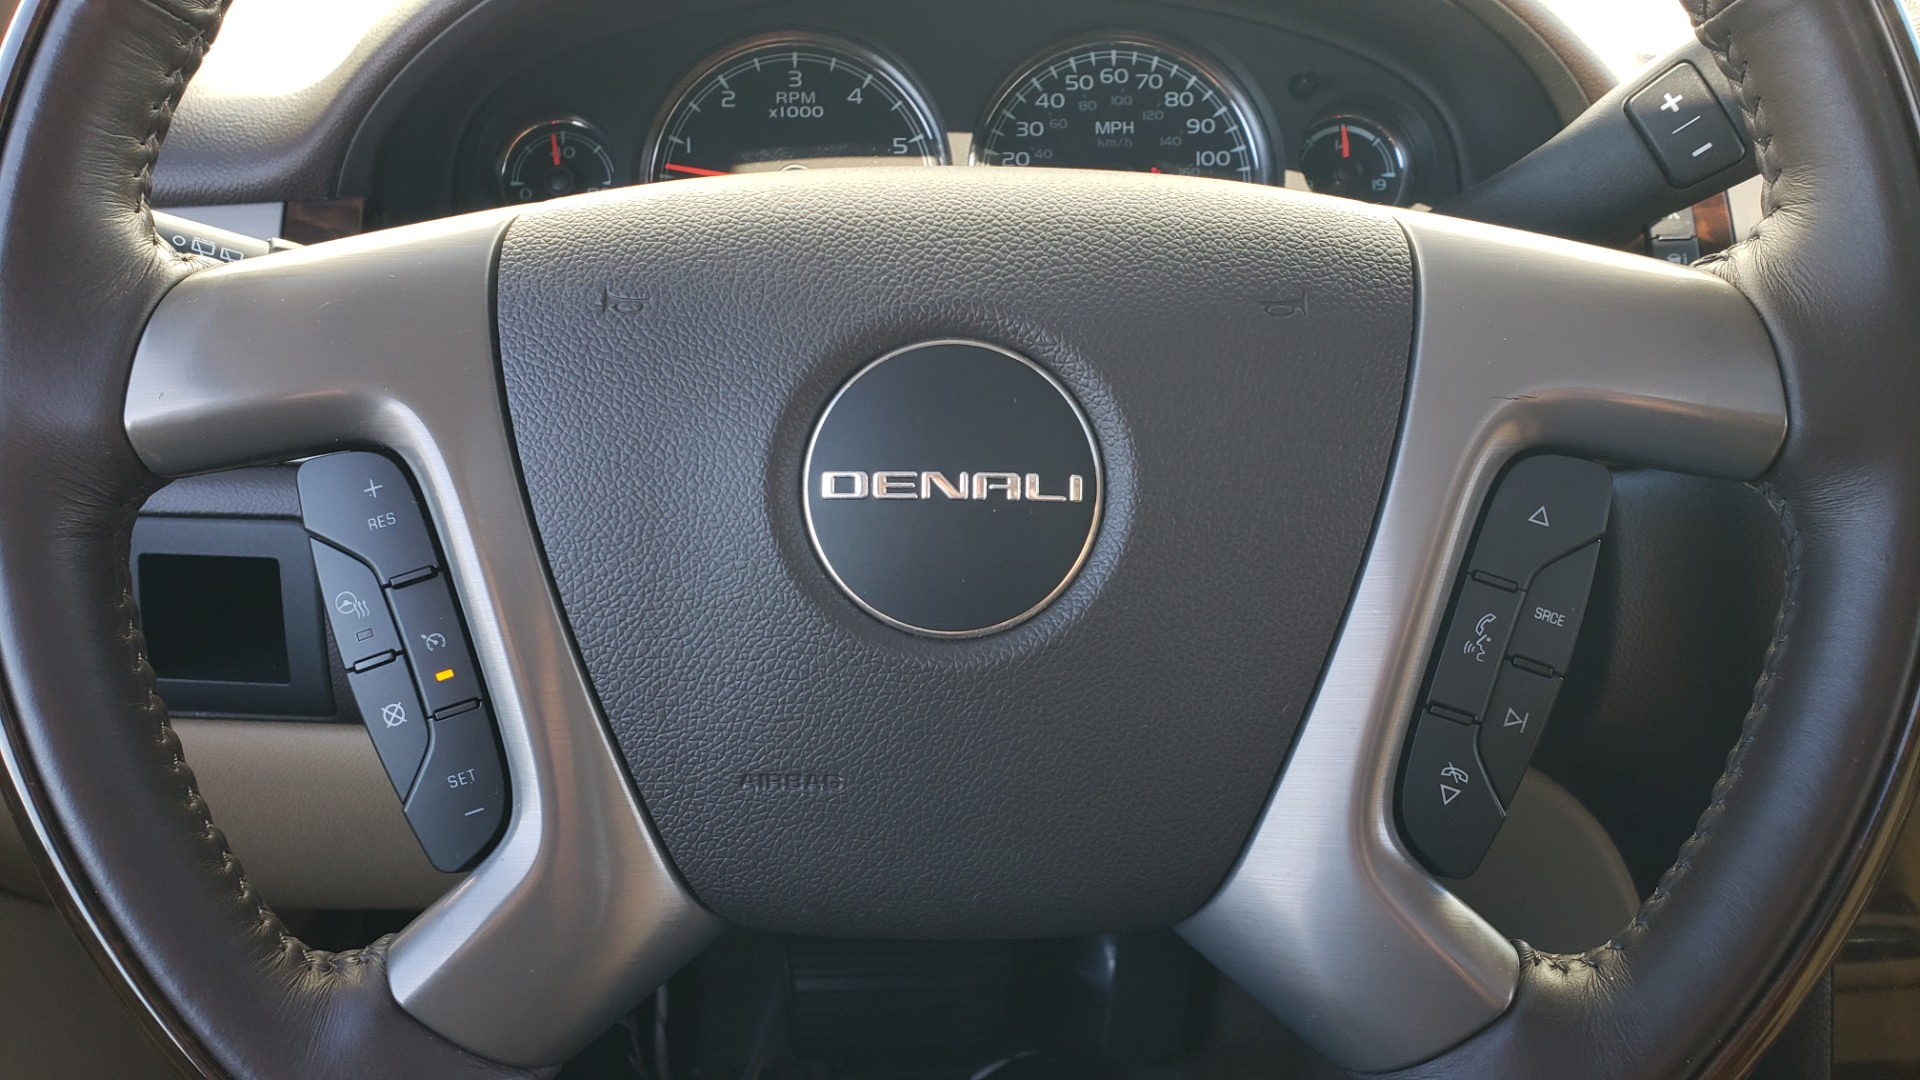 Used 2013 GMC YUKON XL DENALI / AWD / NAV / SUNROOF / 3-ROW / ENTERTAINMENT for sale Sold at Formula Imports in Charlotte NC 28227 40